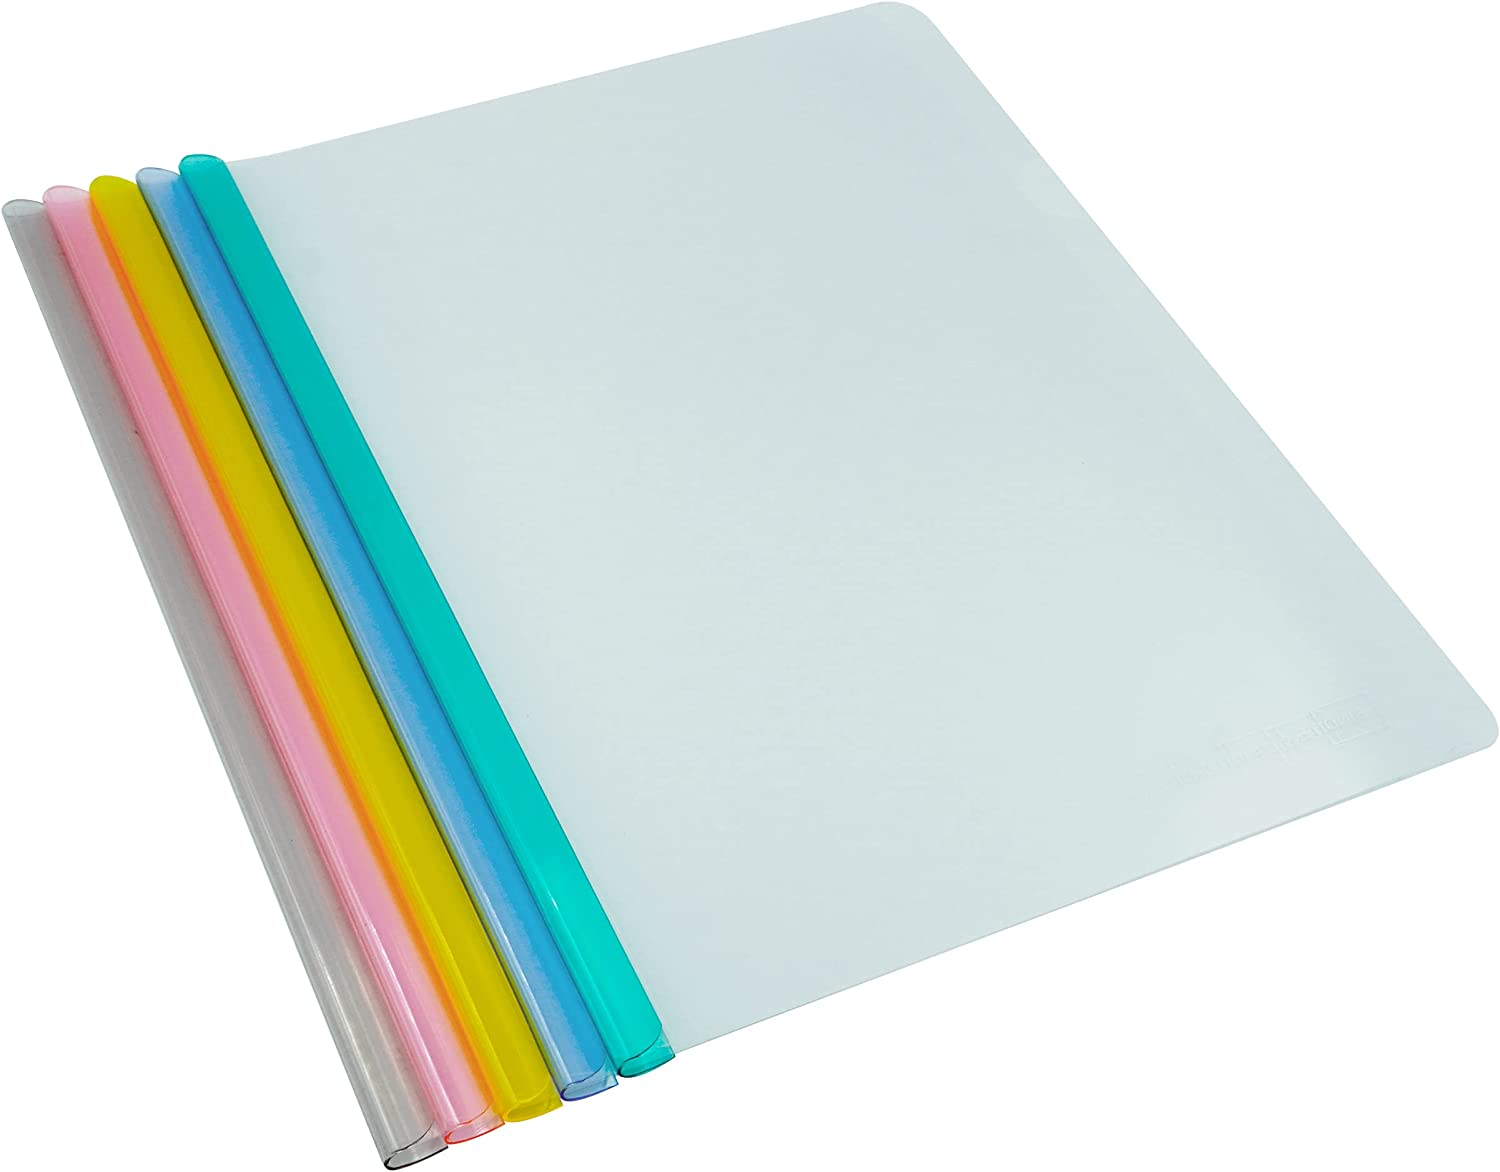 TOTiyea 40 Pcs Clear Report Covers with Sliding Bars,7mm Sliding Bar File Folder Binder for Letter and A4 Size Paper,70 Sheet Capacity 5 Assorted Colors